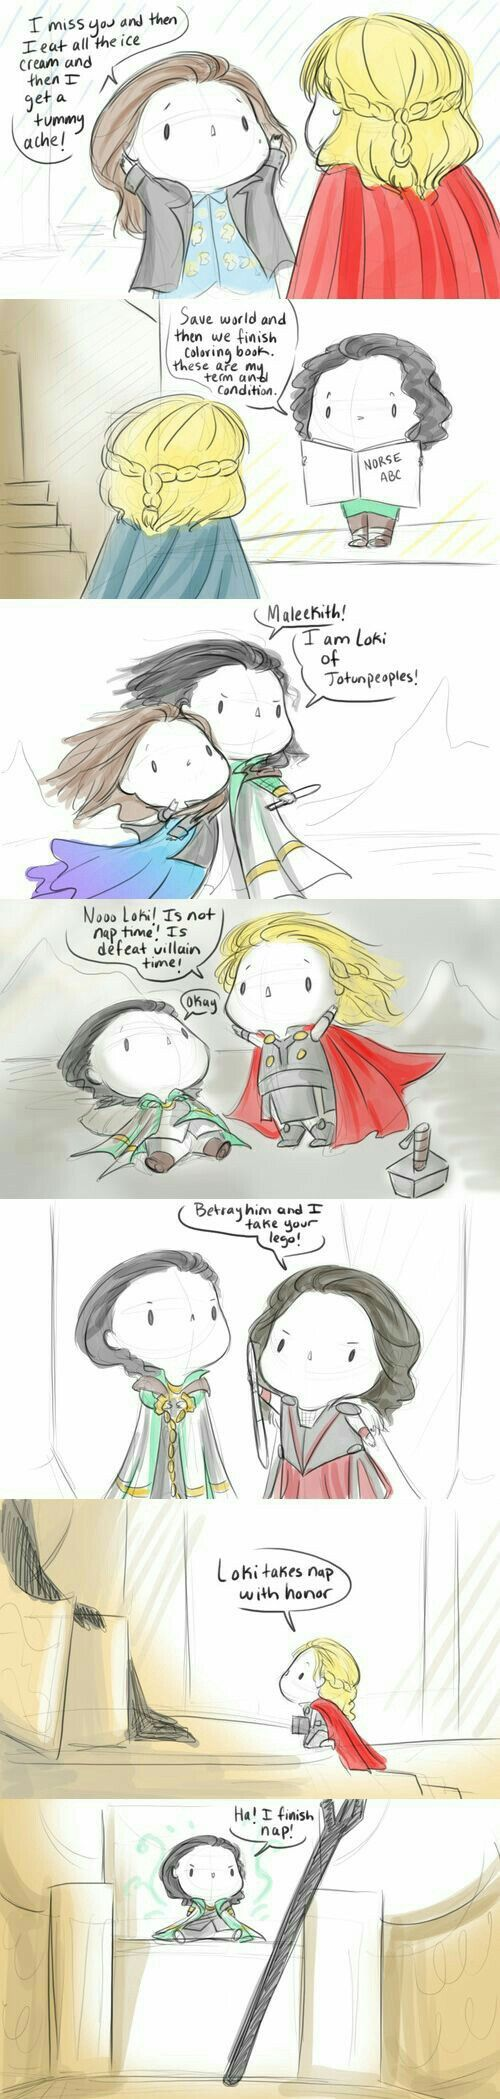 Baby Avengers Thor2<<<I don't know what's happening, all I know is that it's adorable